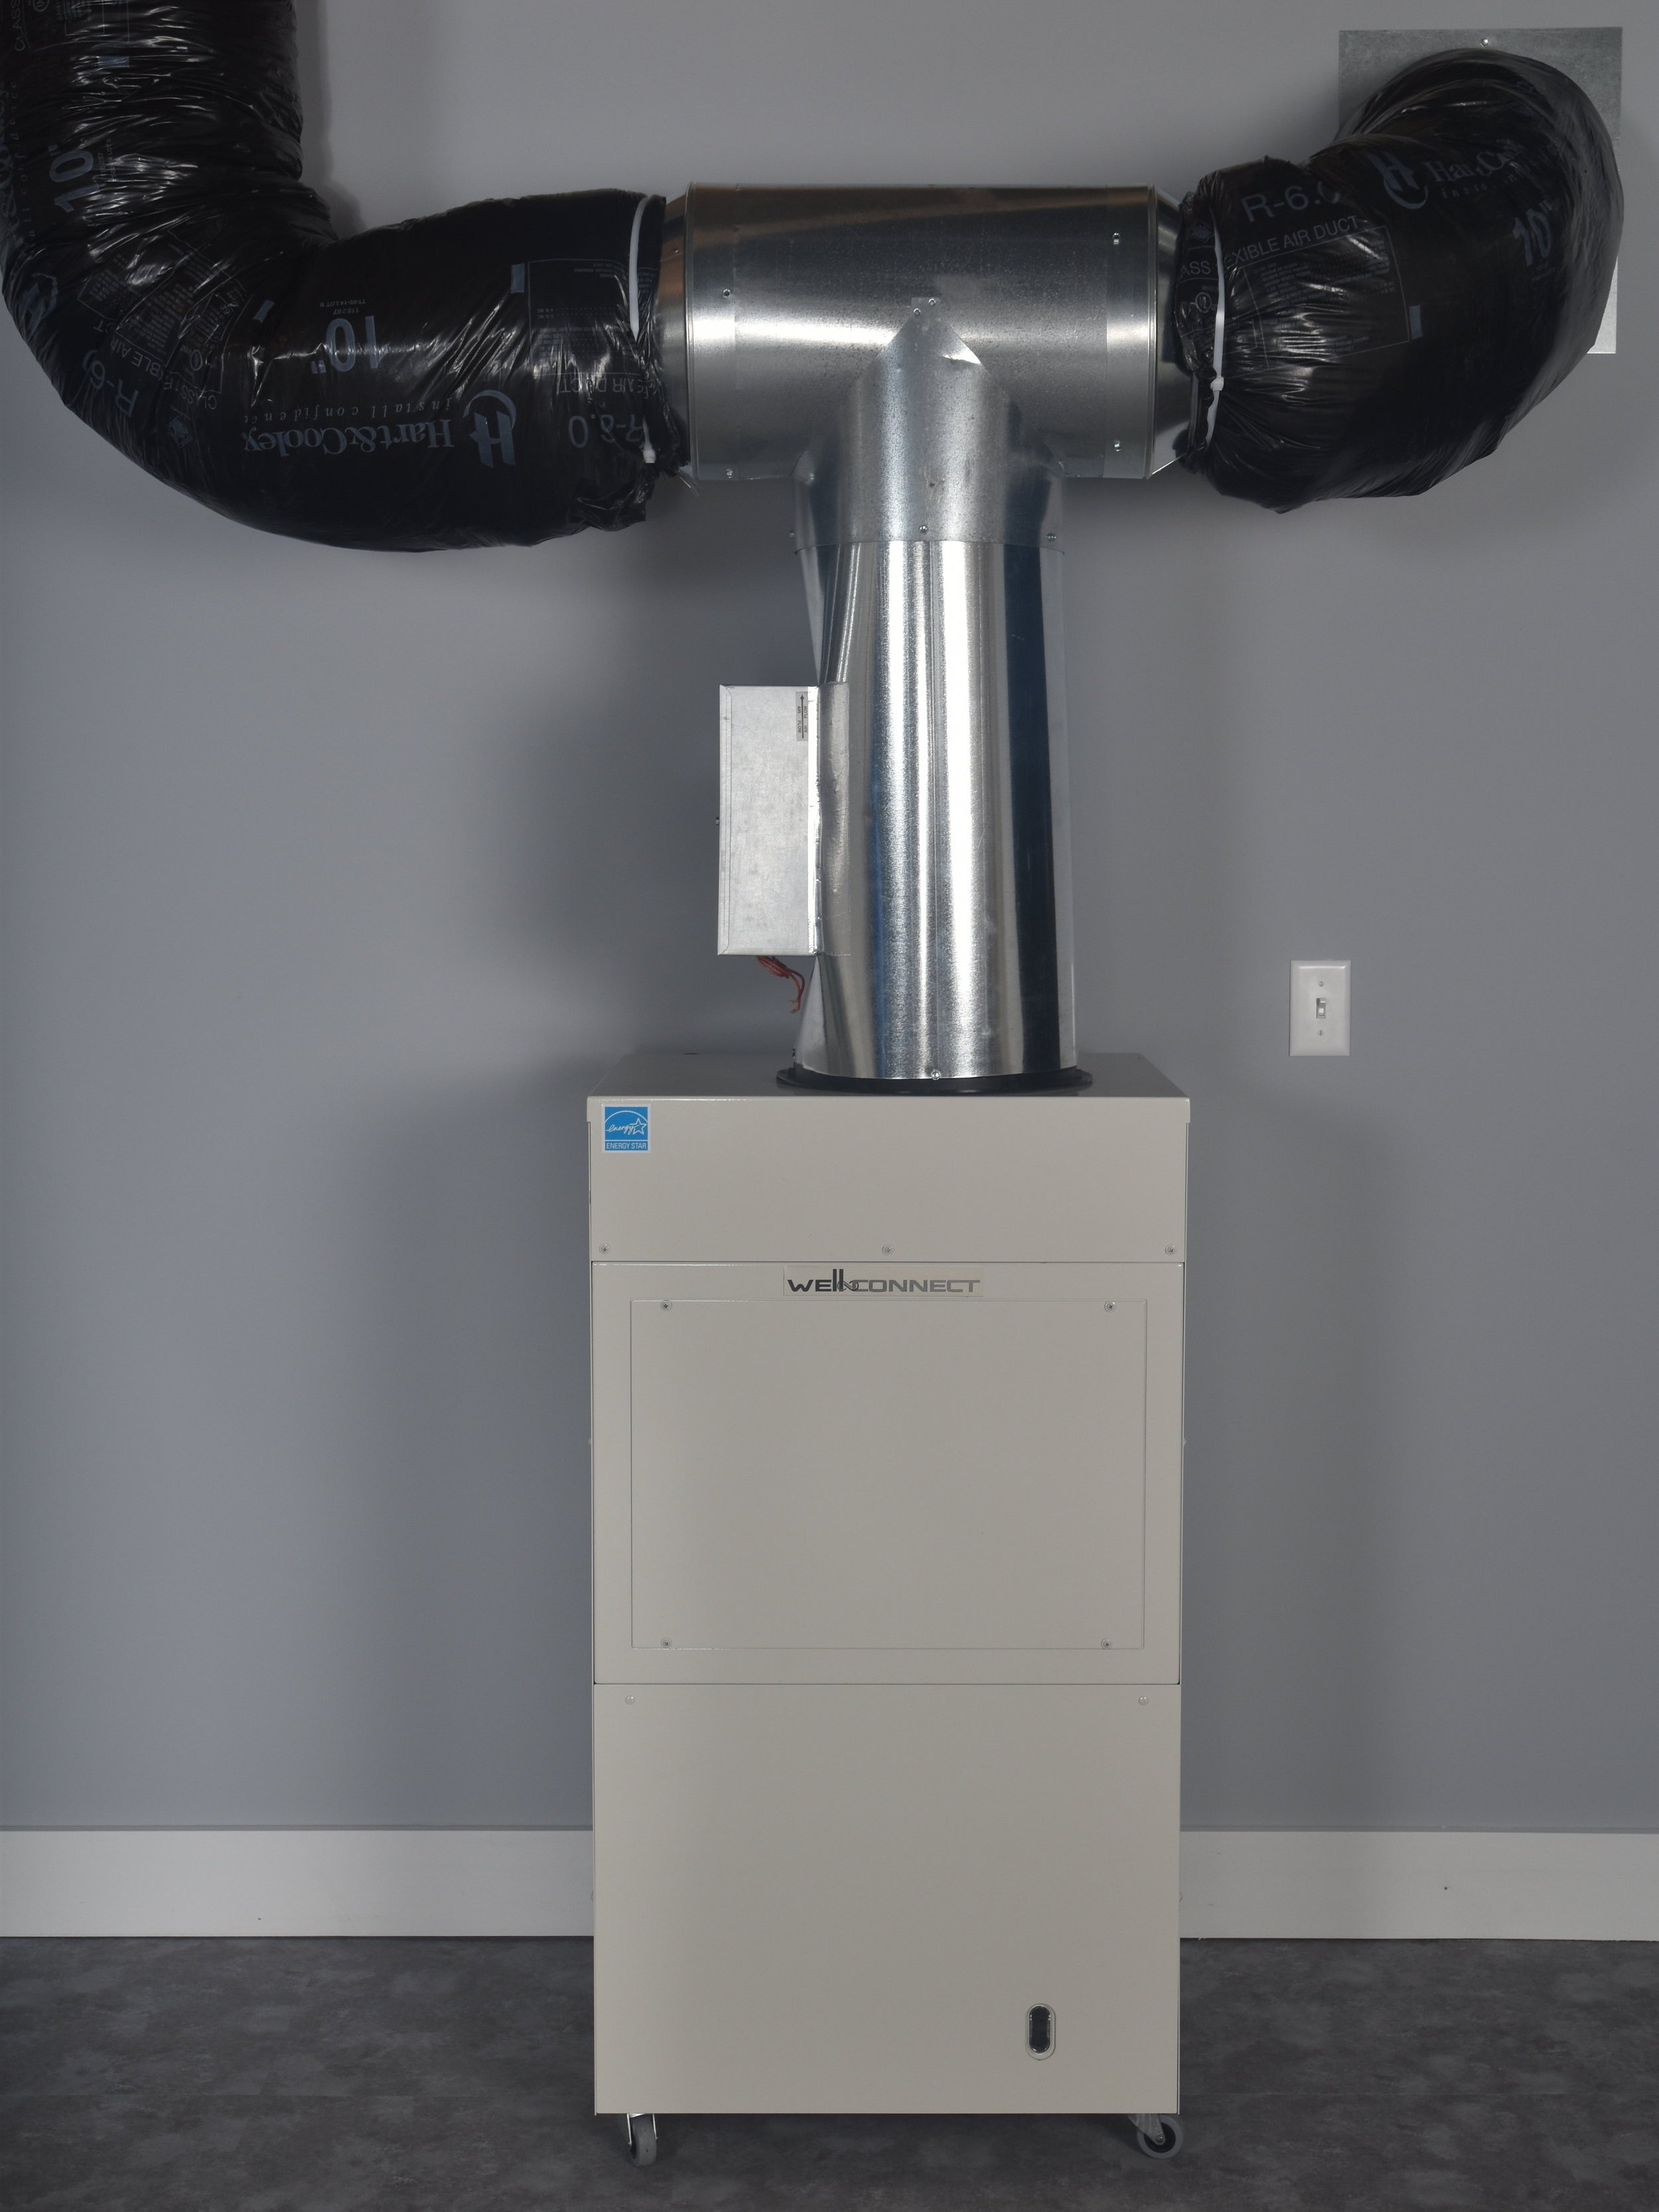 Self Ducted - If an existing duct system is not available, one may be created just for the Well-Connect. A good option for homes with baseboard or in-floor heat.